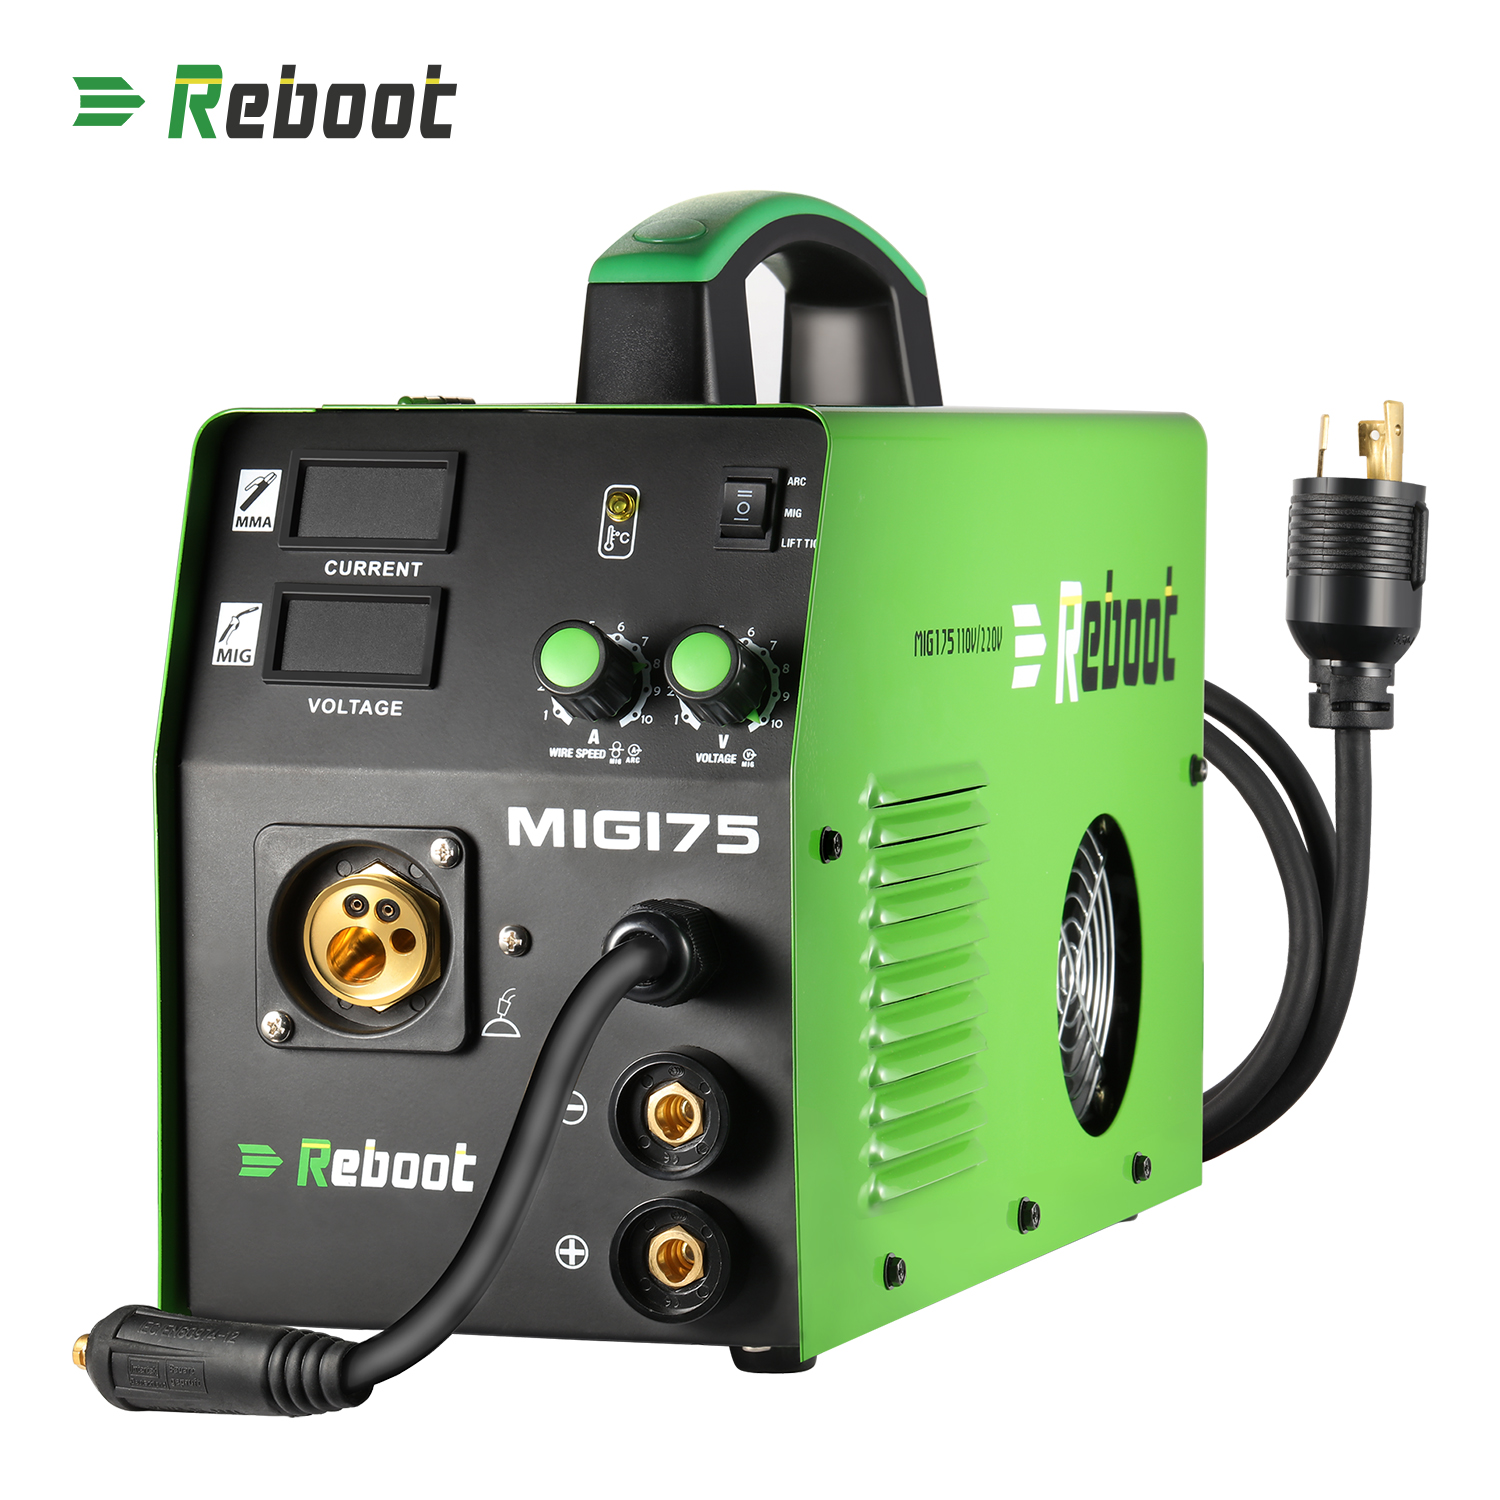 Reboot MMA MAG MIG Welder MIG-175 Flux Core Wire And Solid Wire IGBT Inverter Welding Machine  Euro Plug  Gas/Gasless 5KG